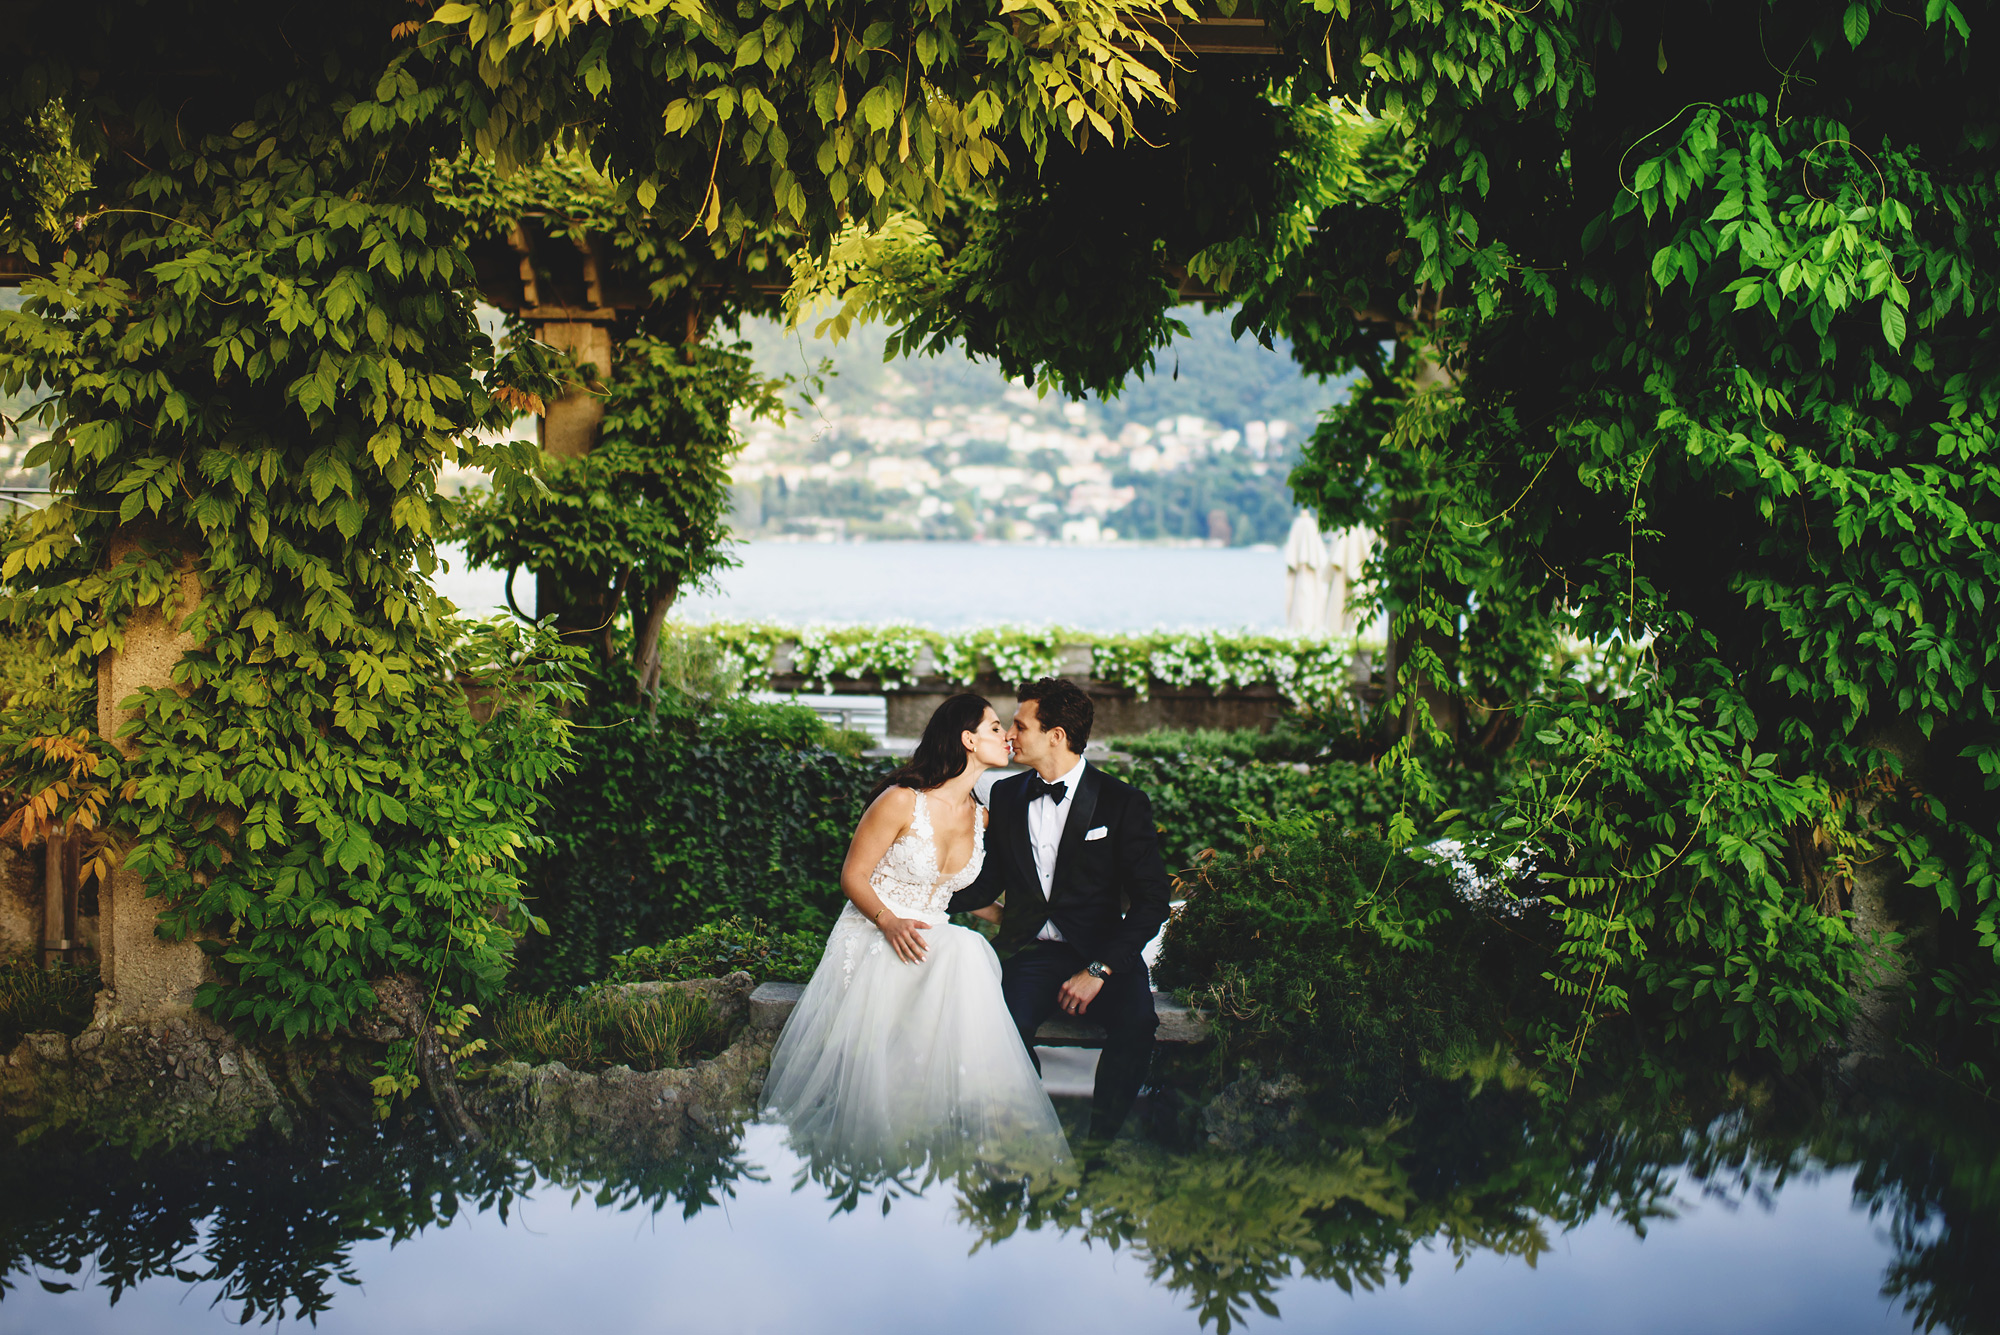 Couple kissing at reflecting pond Lake Como - photo by Ross Harvey